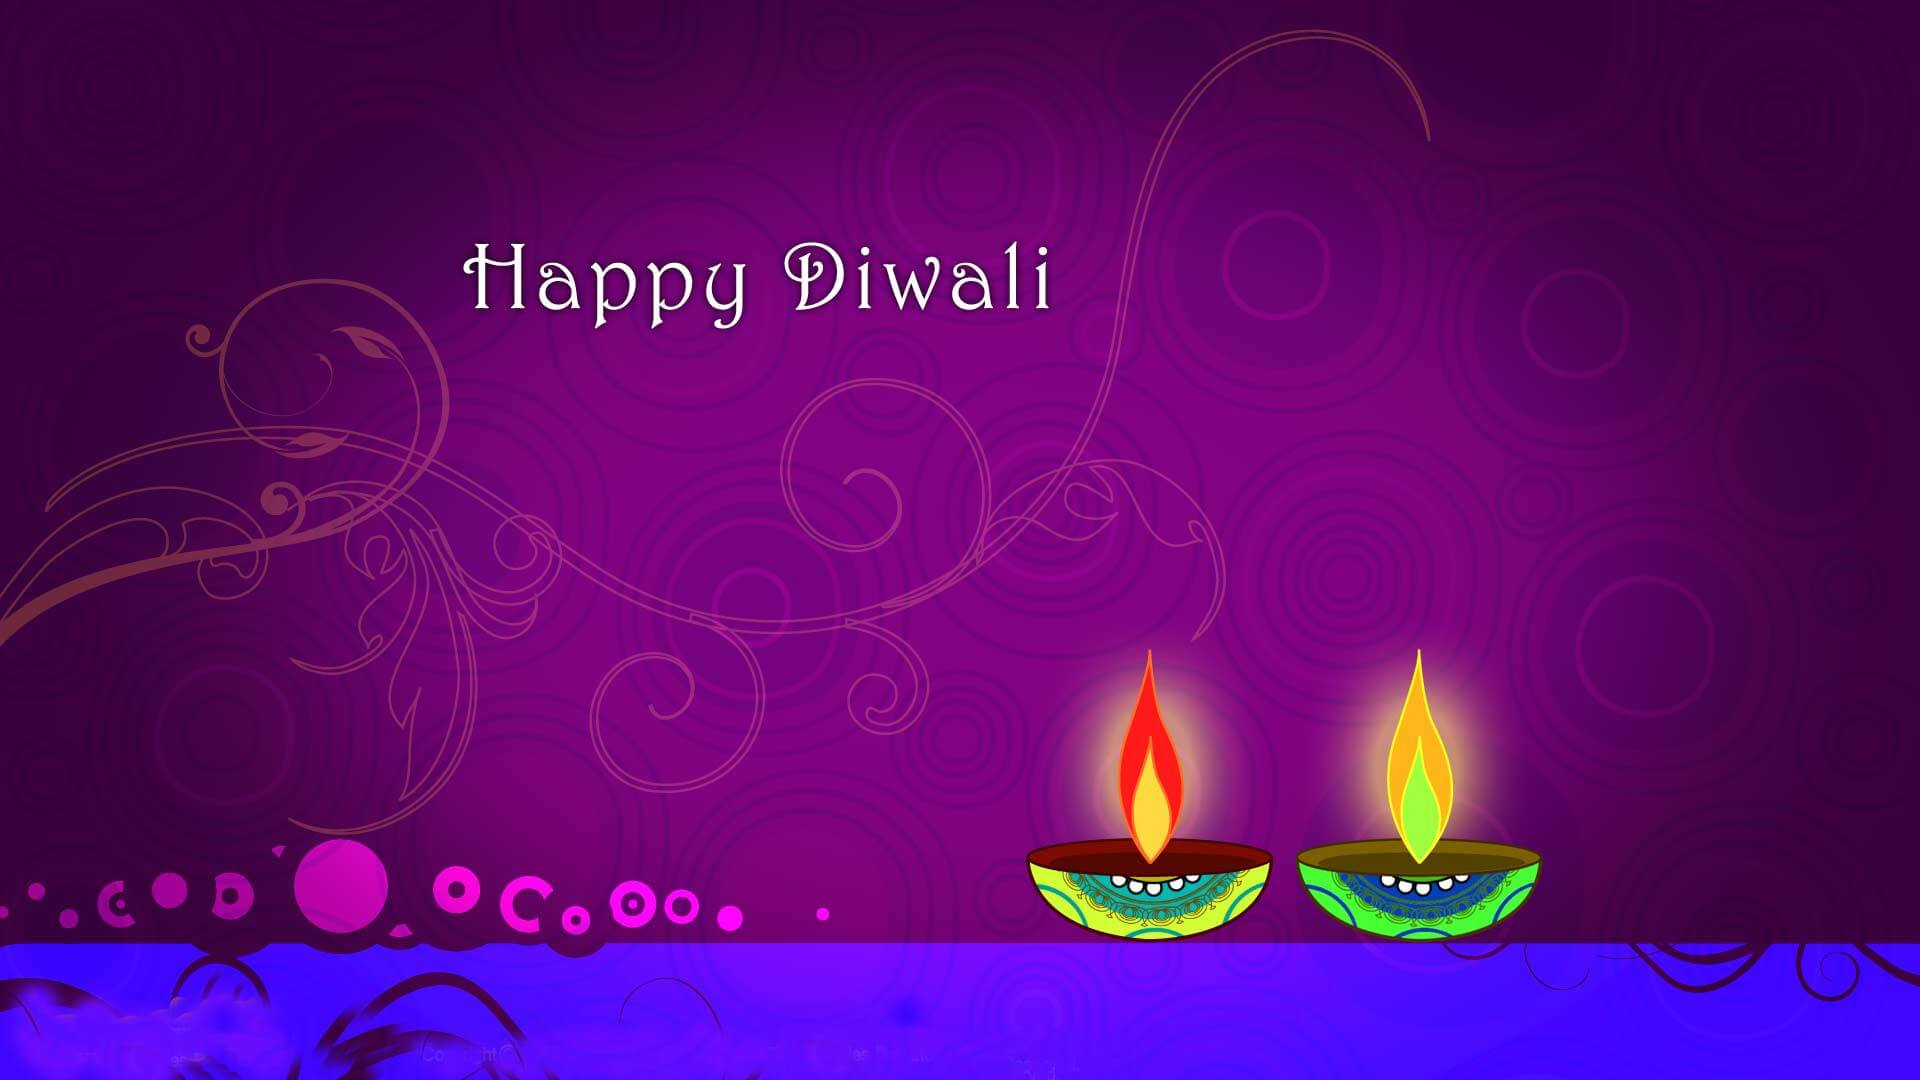 Happy diwali 2018 greeting card HD image